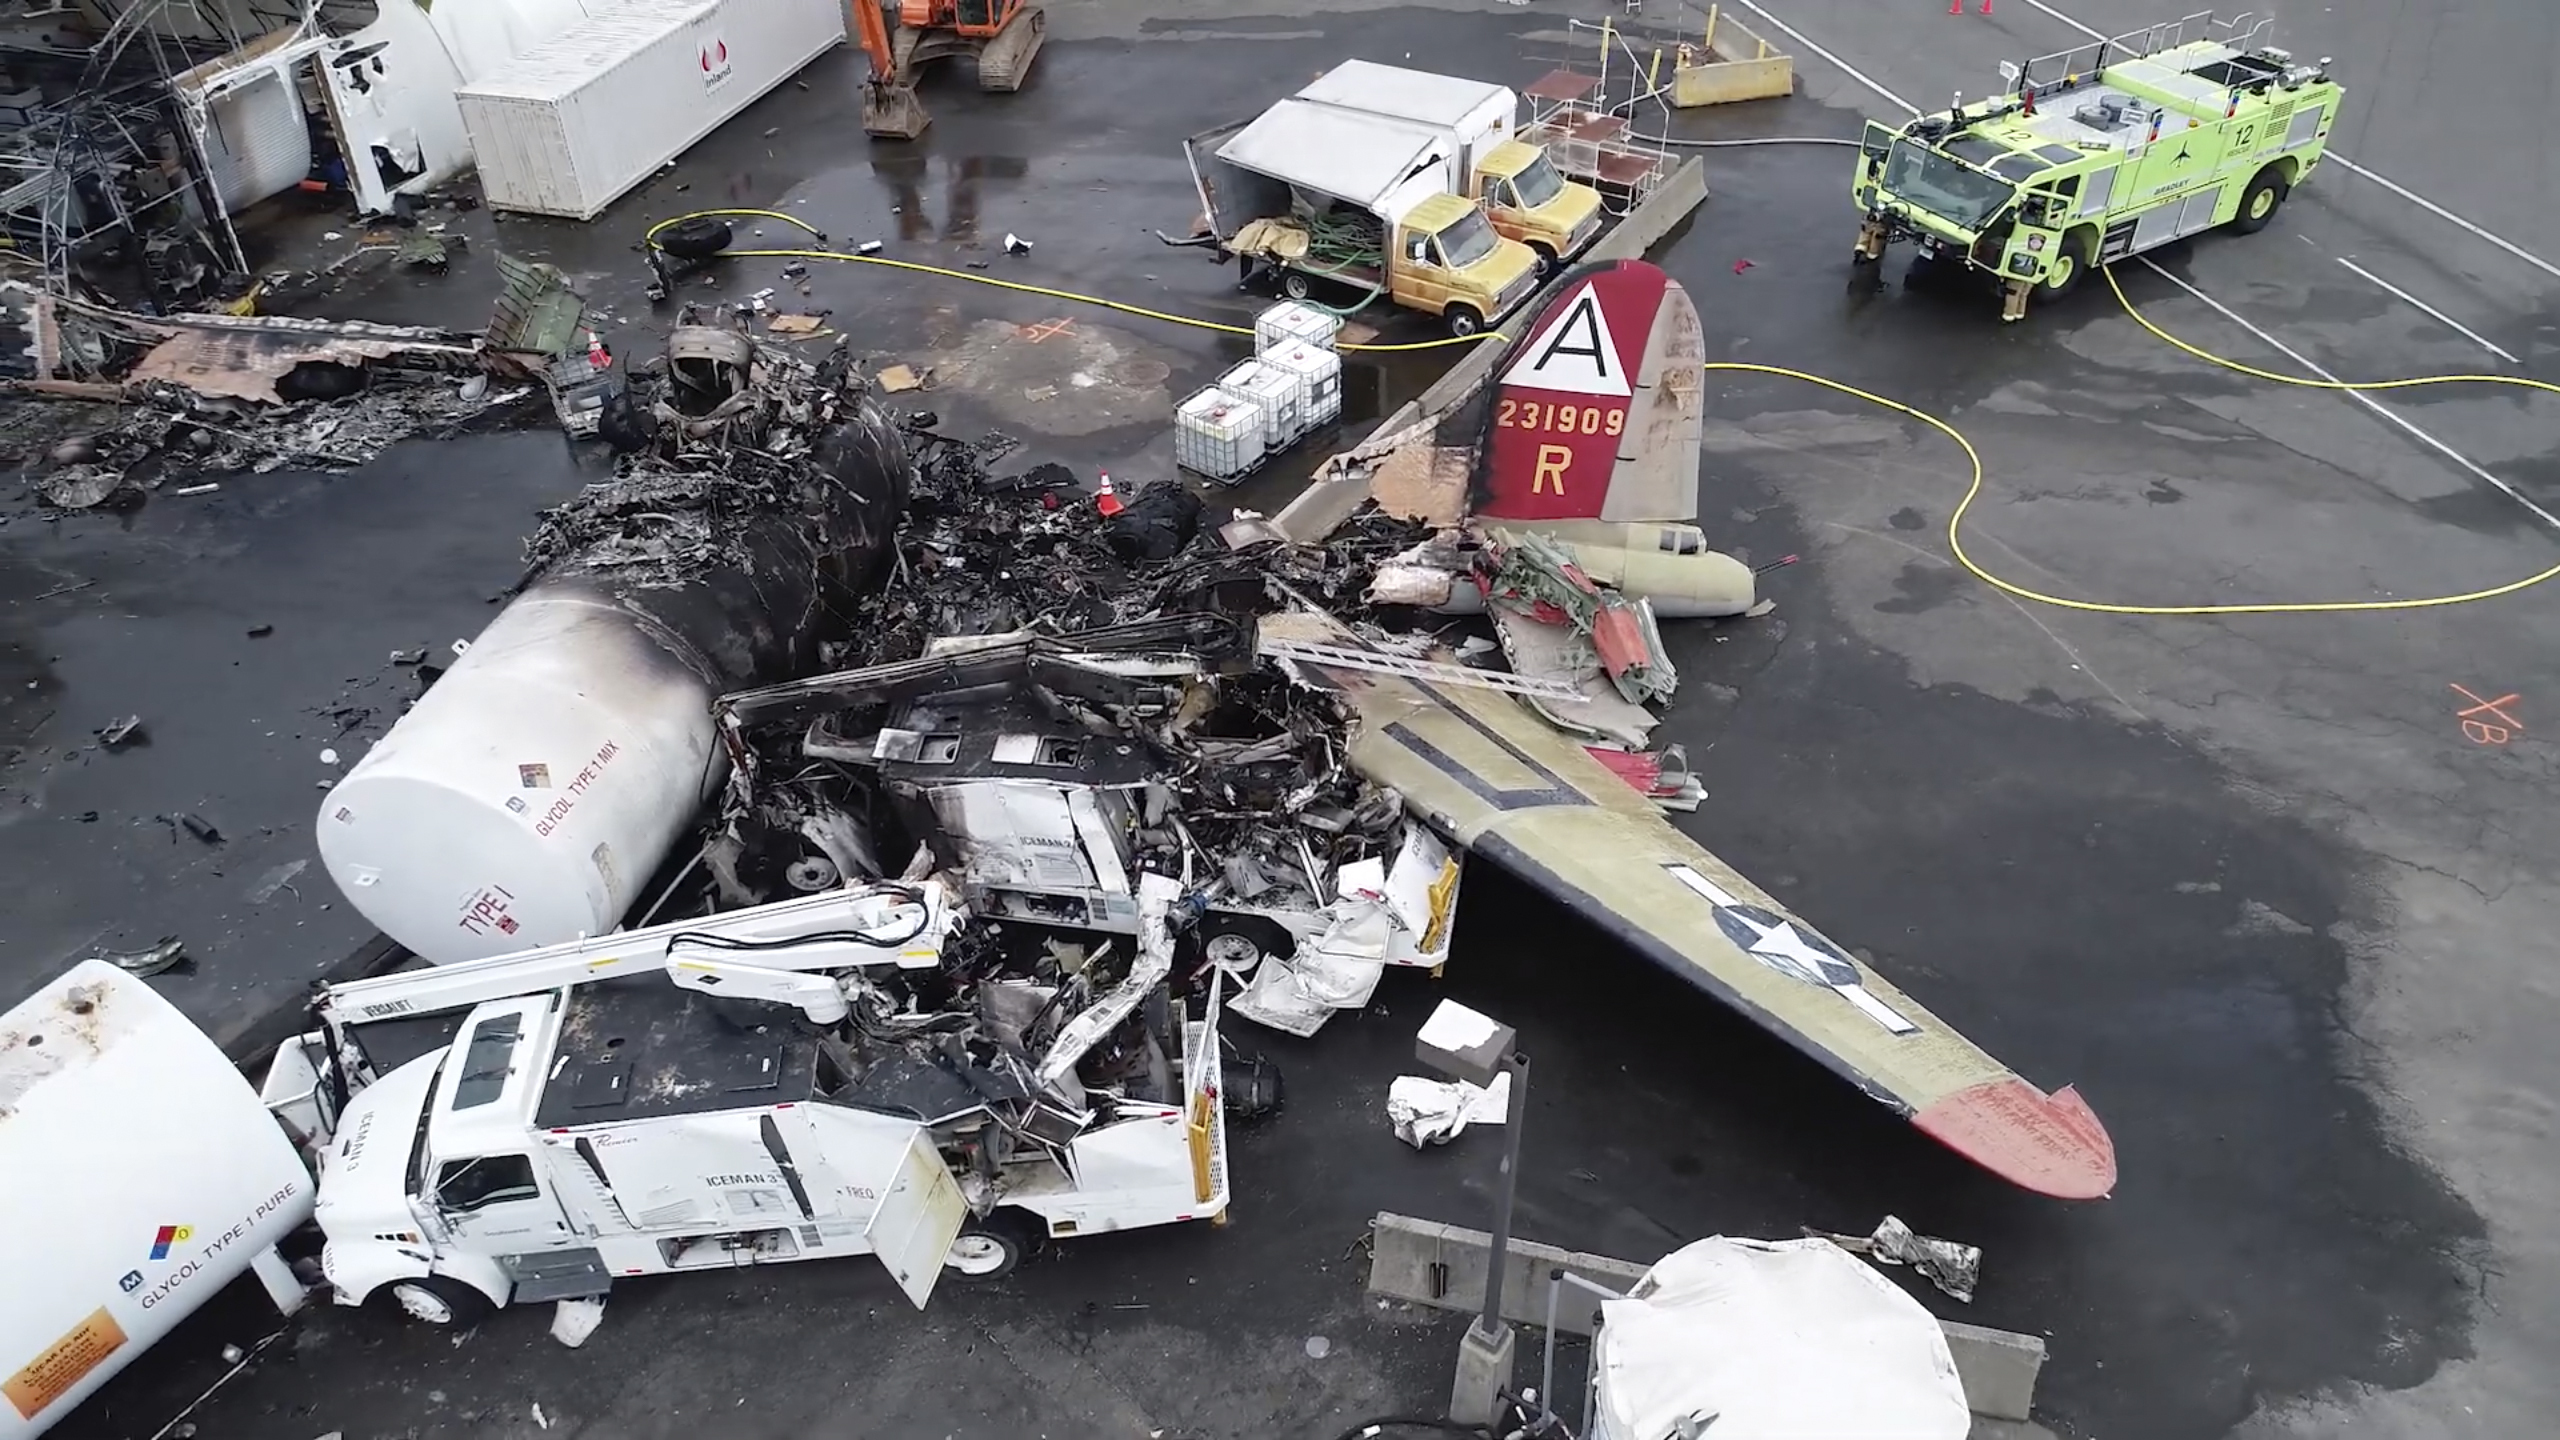 This image taken from video provided by National Transportation Safety Board shows damage from a World War II-era B-17 bomber plane that crashed Wednesday at Bradley International Airport, Thursday, Oct. 3, 2019 in Windsor Locks, Conn.